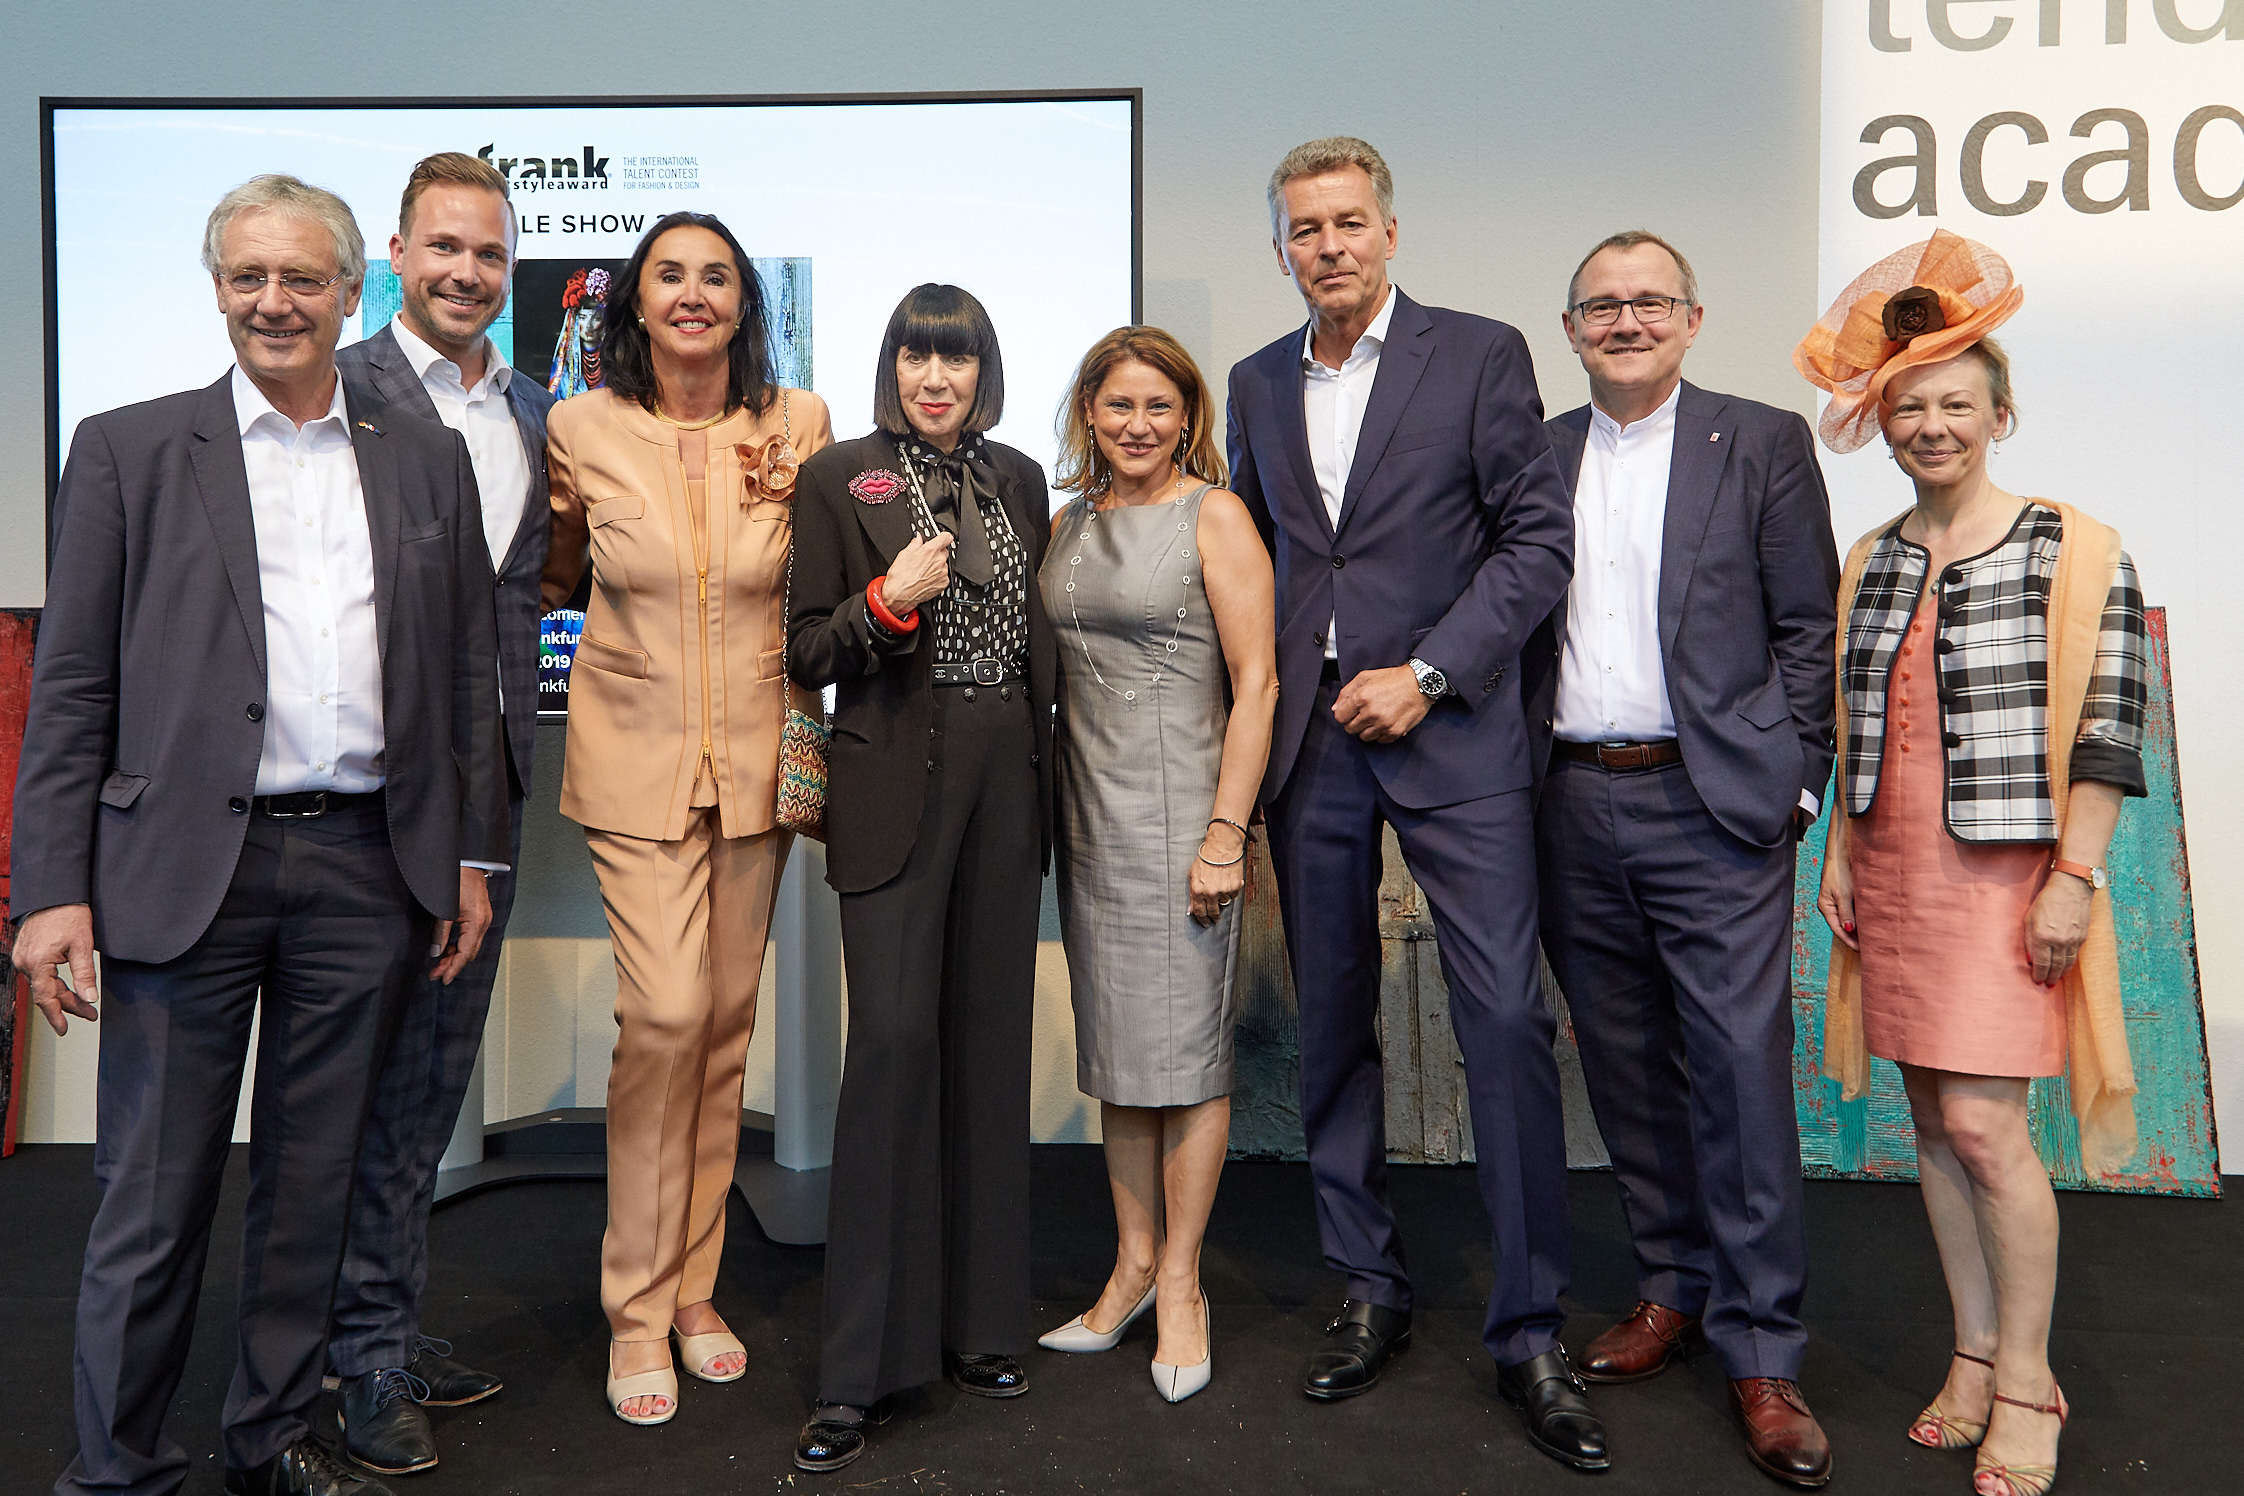 Frankfurt Style Award - International Talent Contest for Fashion and Design